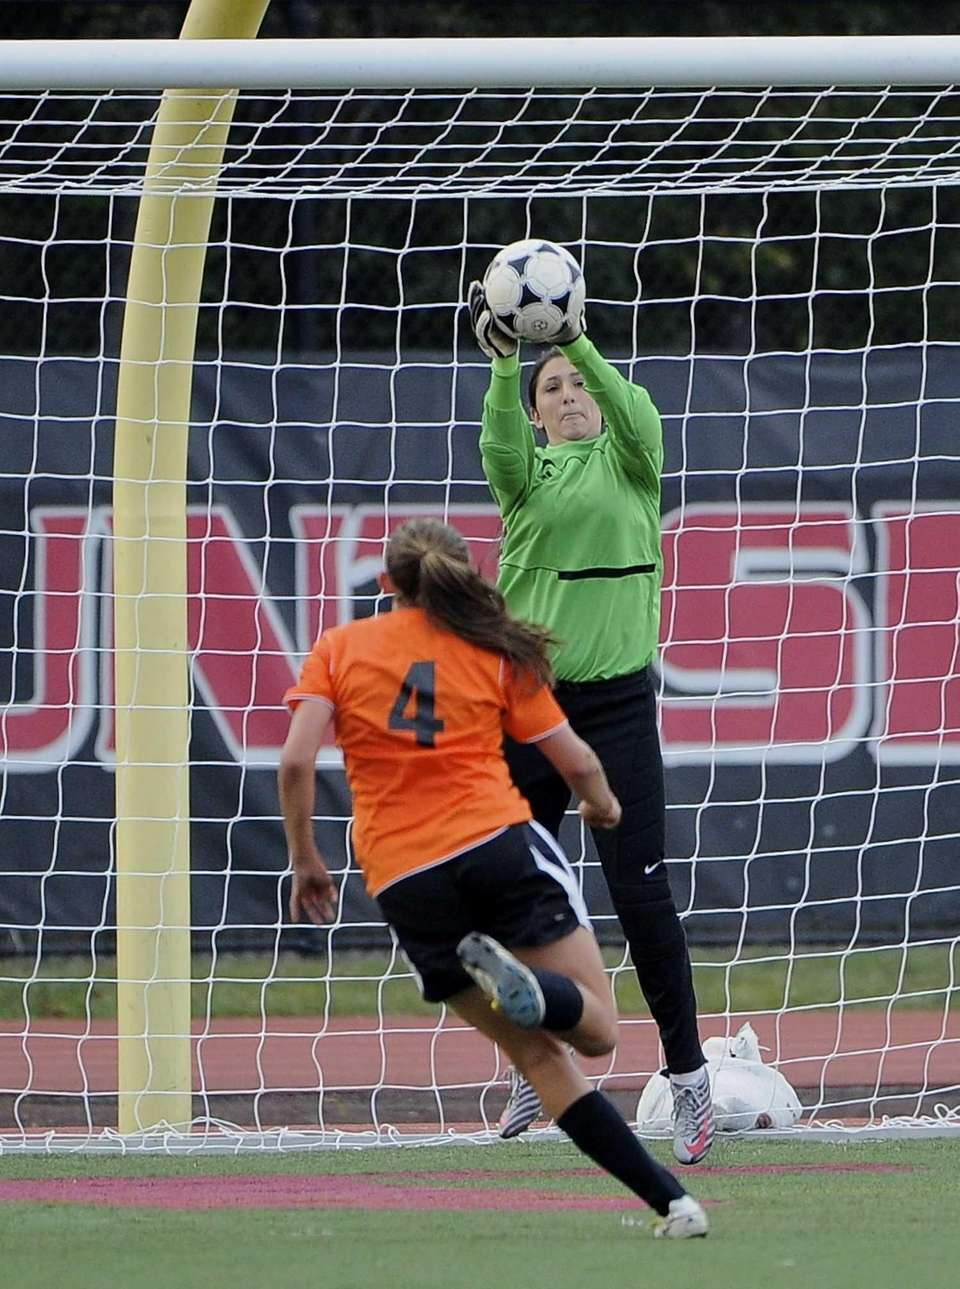 Mt. Sinai goalkeeper Alicia Pirone makes a save